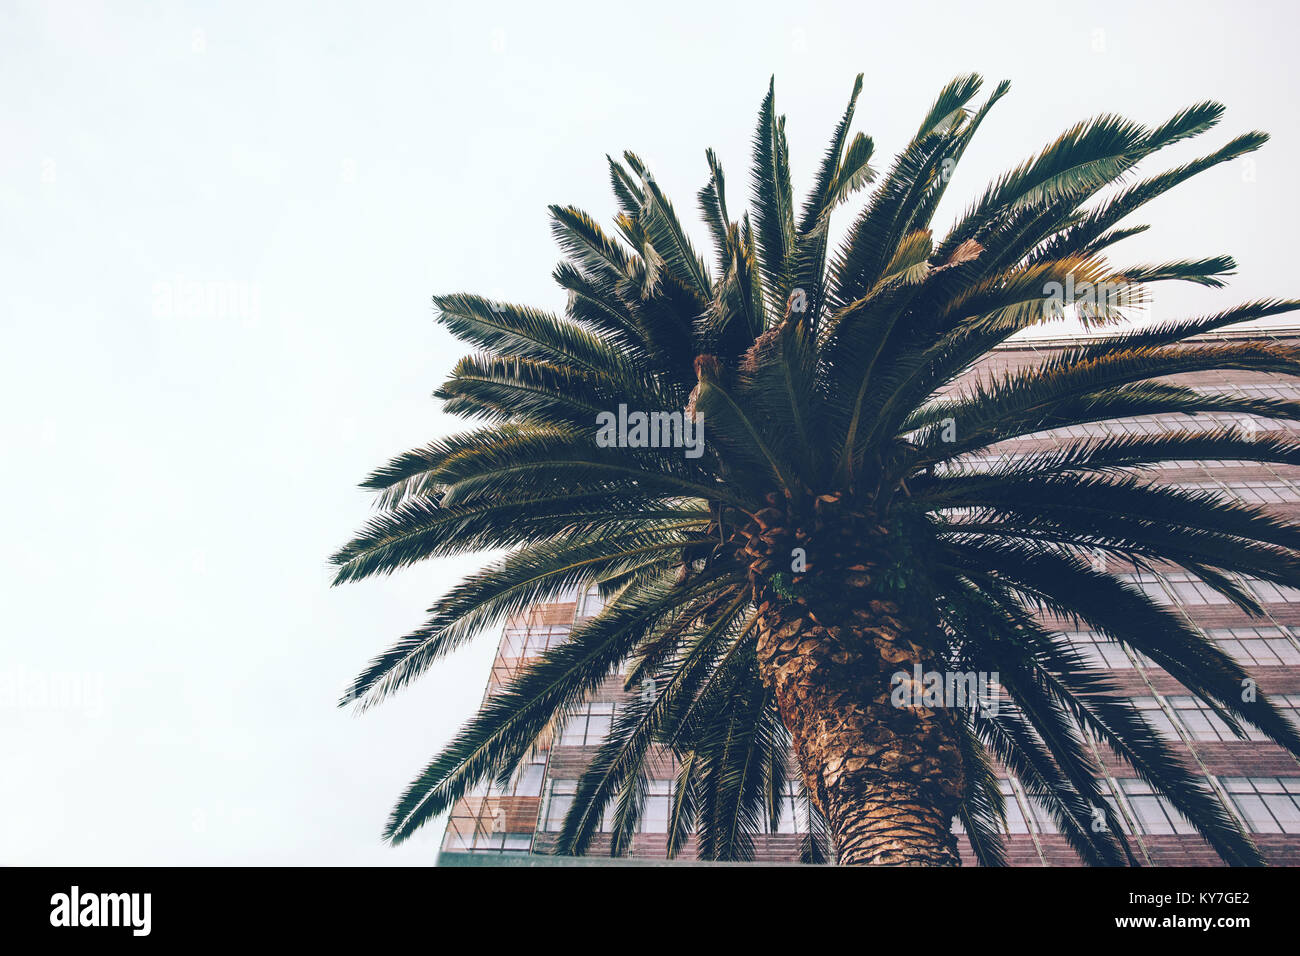 Palm tree in tropical city minimal landscape background Stock Photo